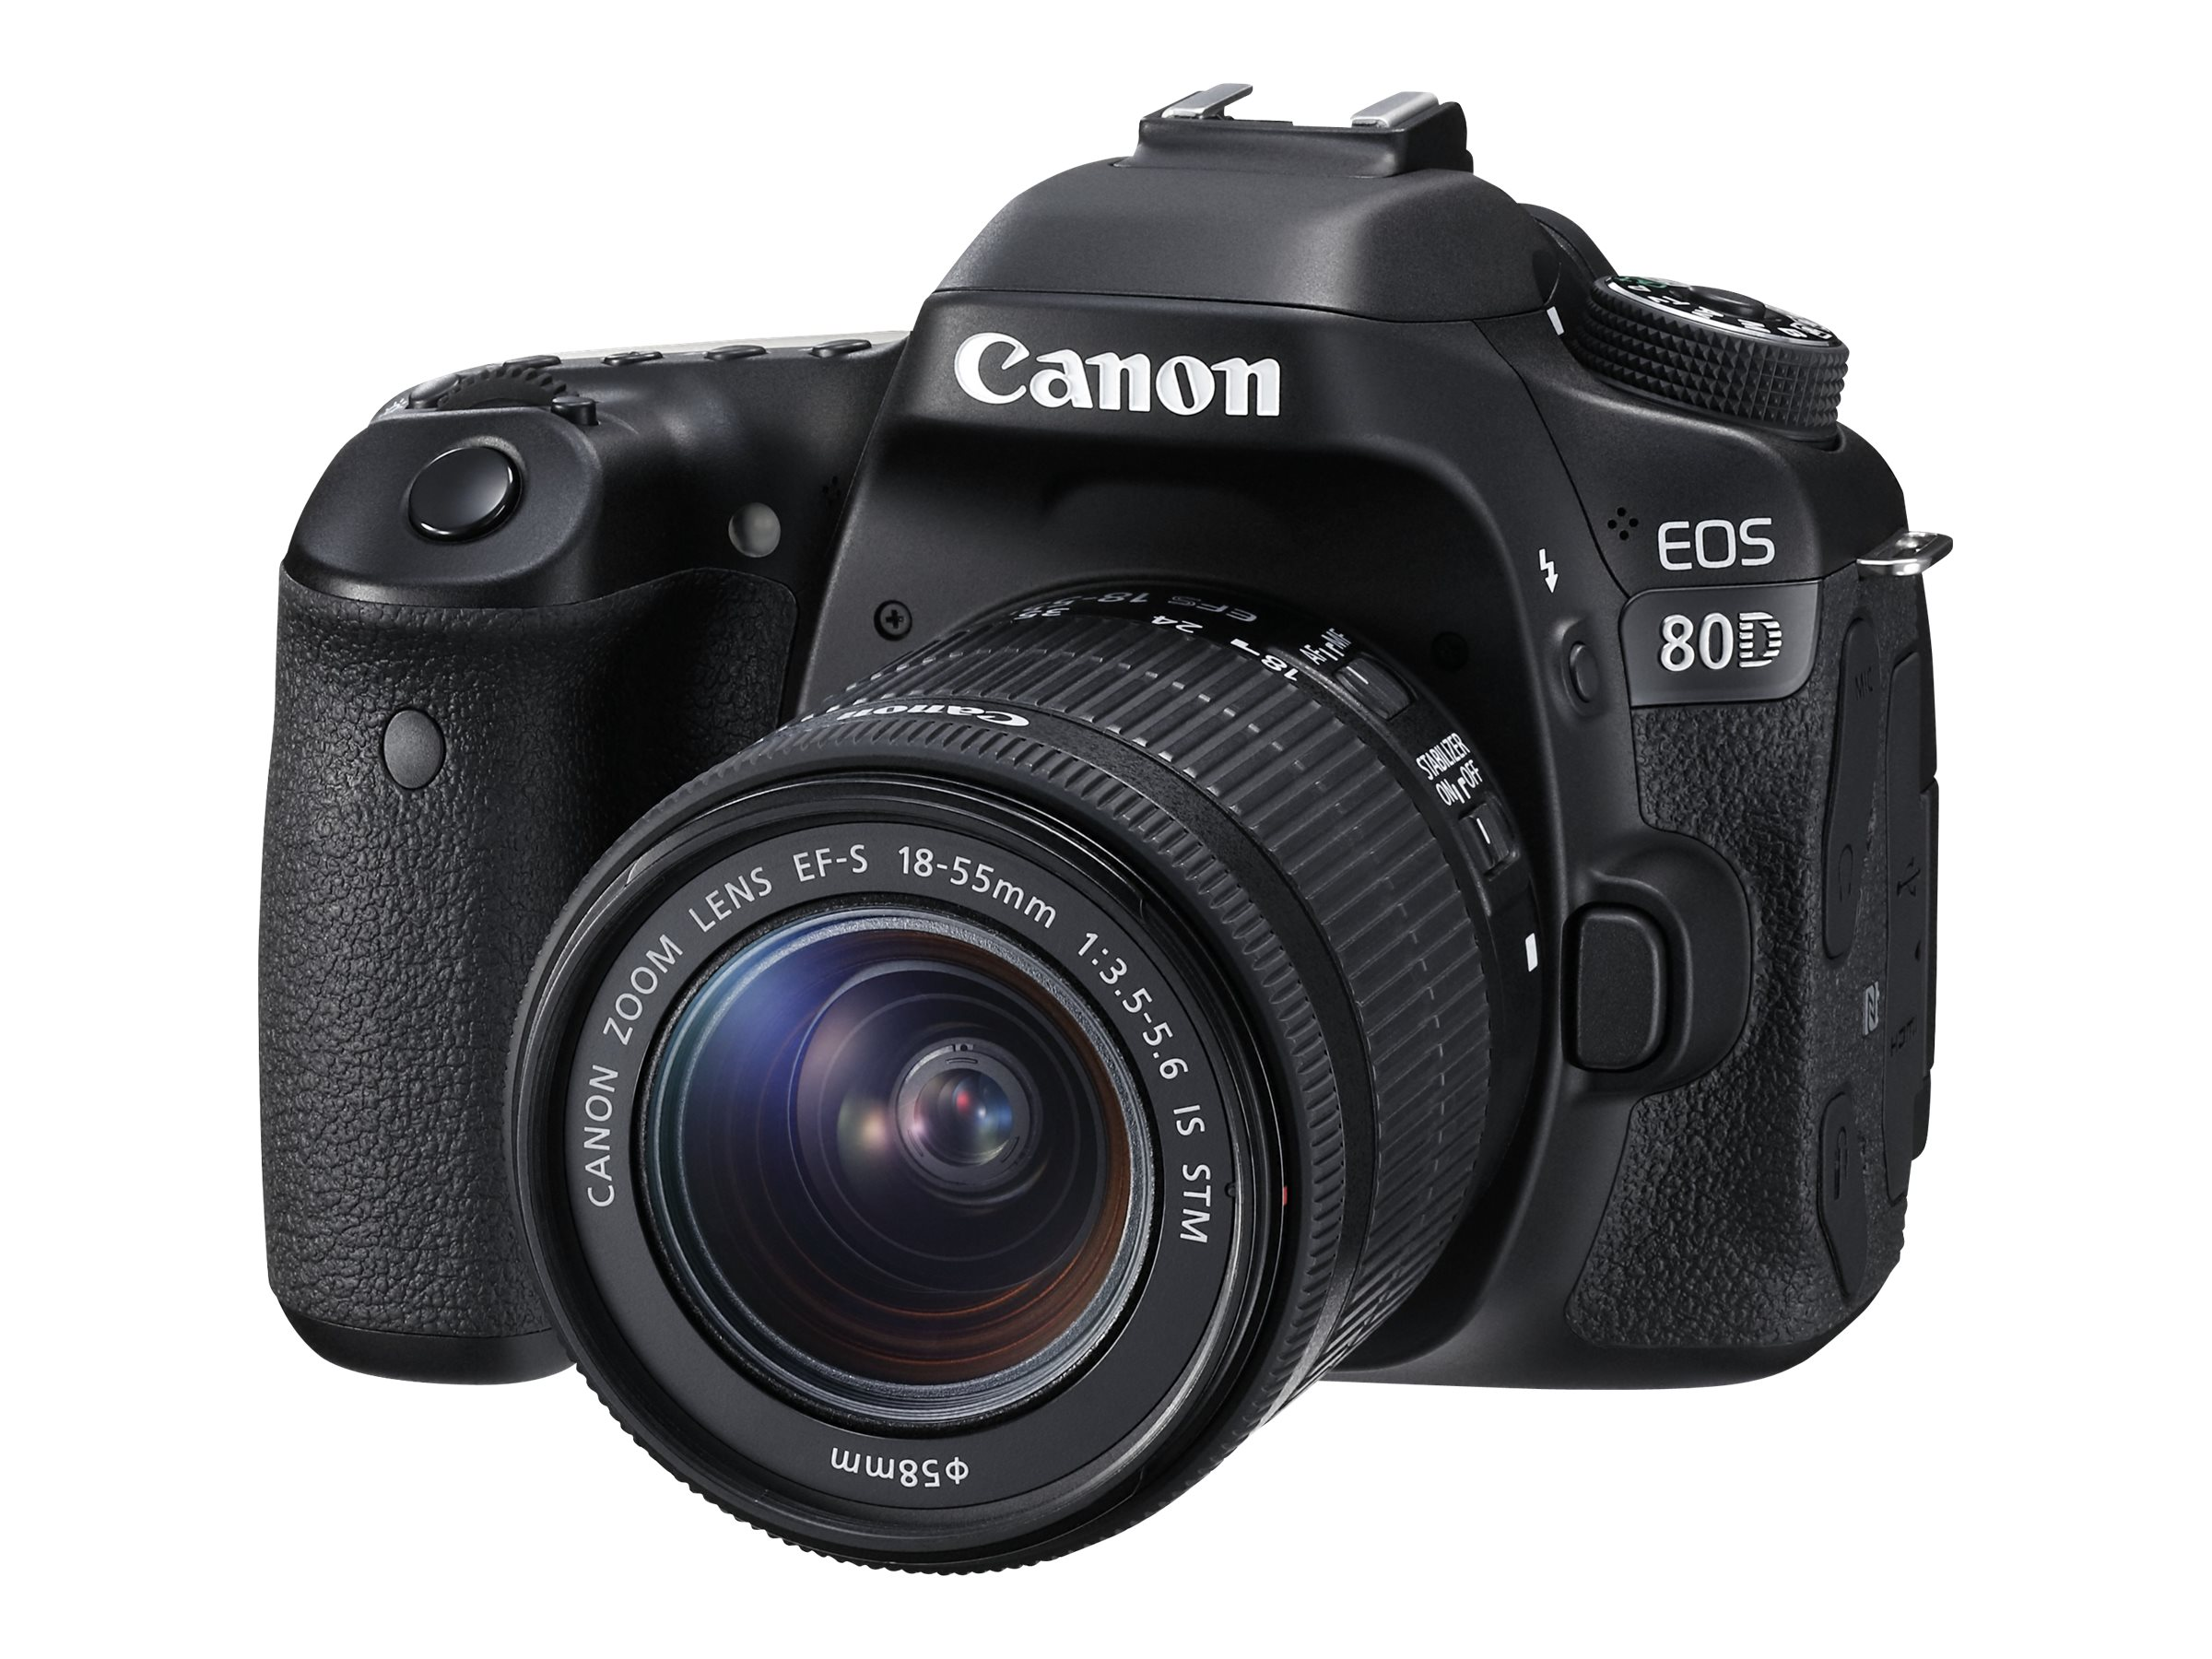 Canon EOS 80D DSLR Camera with 18-55mm IS STM Lens, 1263C005